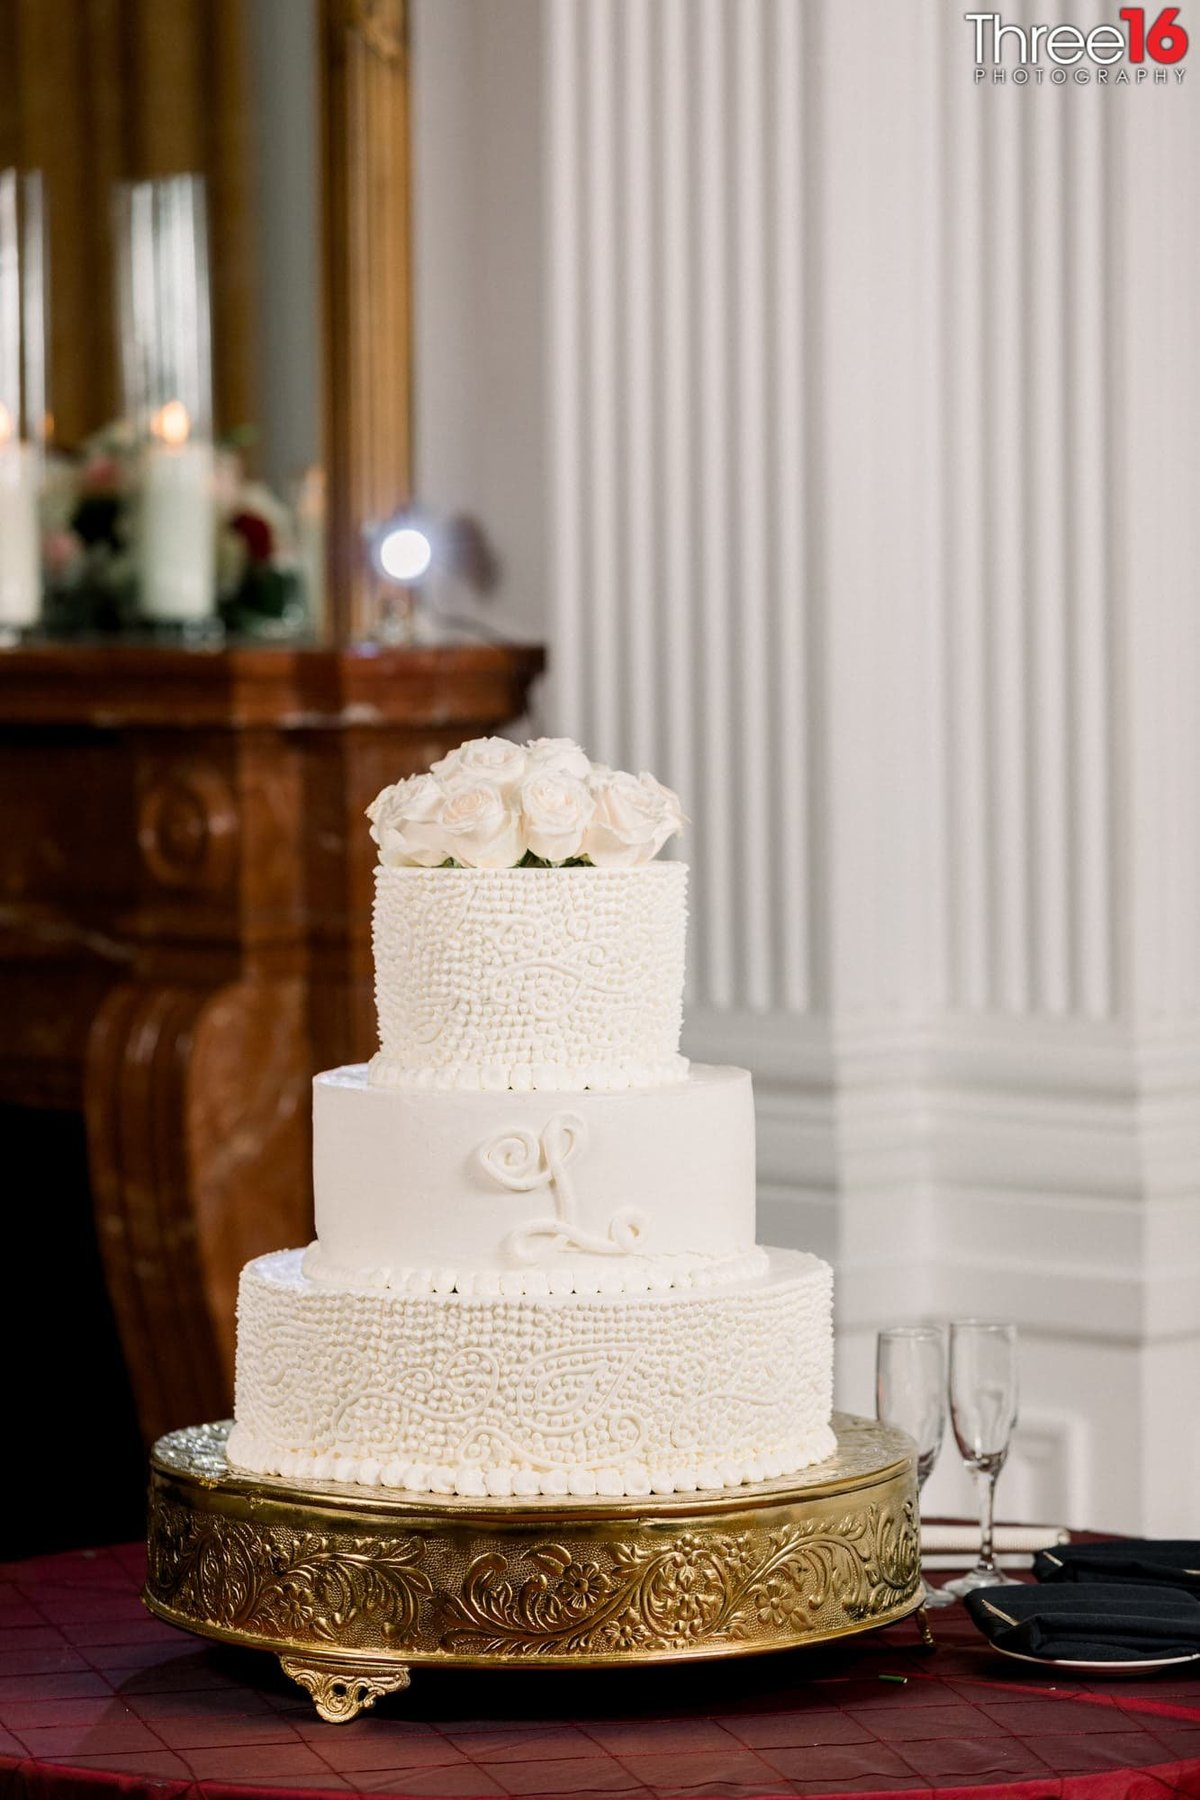 Beautiful 3-tiered white wedding cake